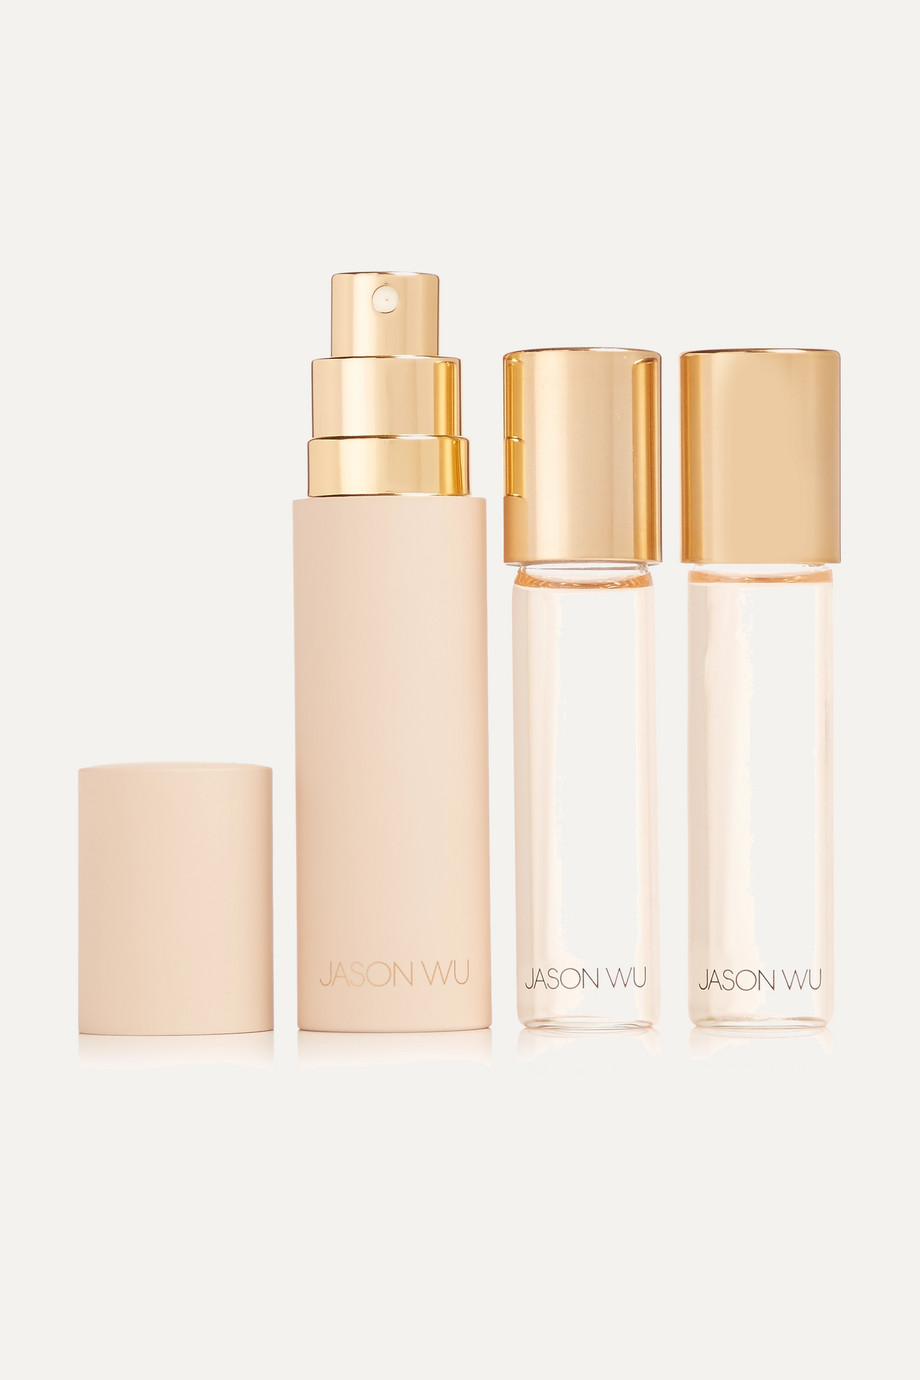 Jason Wu Beauty Eau de Parfum Refills - 3 x 14ml